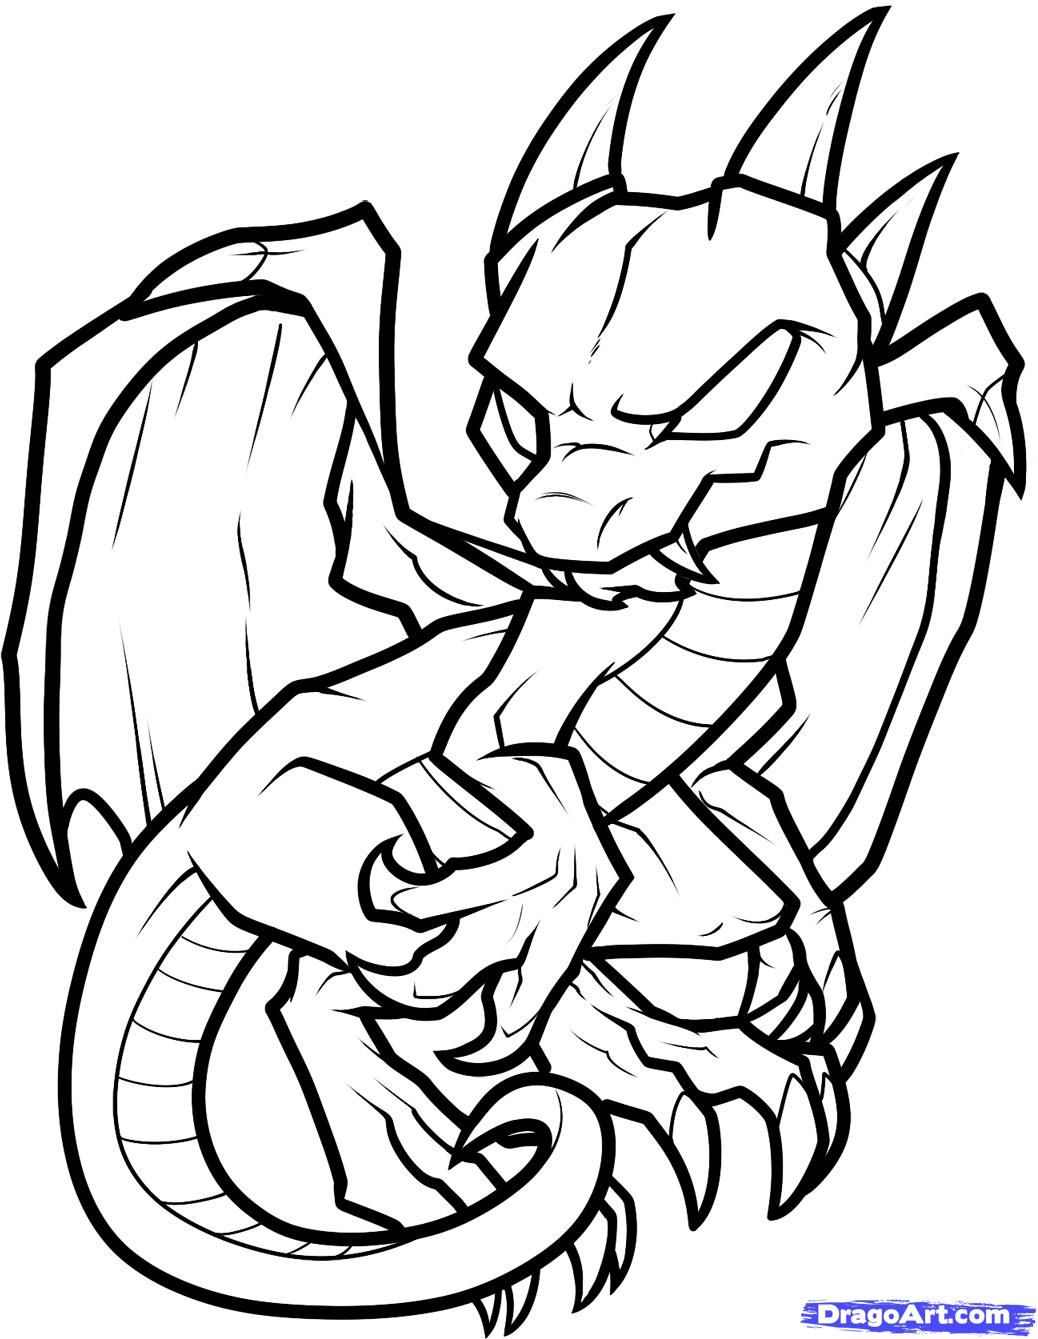 Uncategorized Dragon To Draw dragon coloring pages how to draw an anthro baby dragon